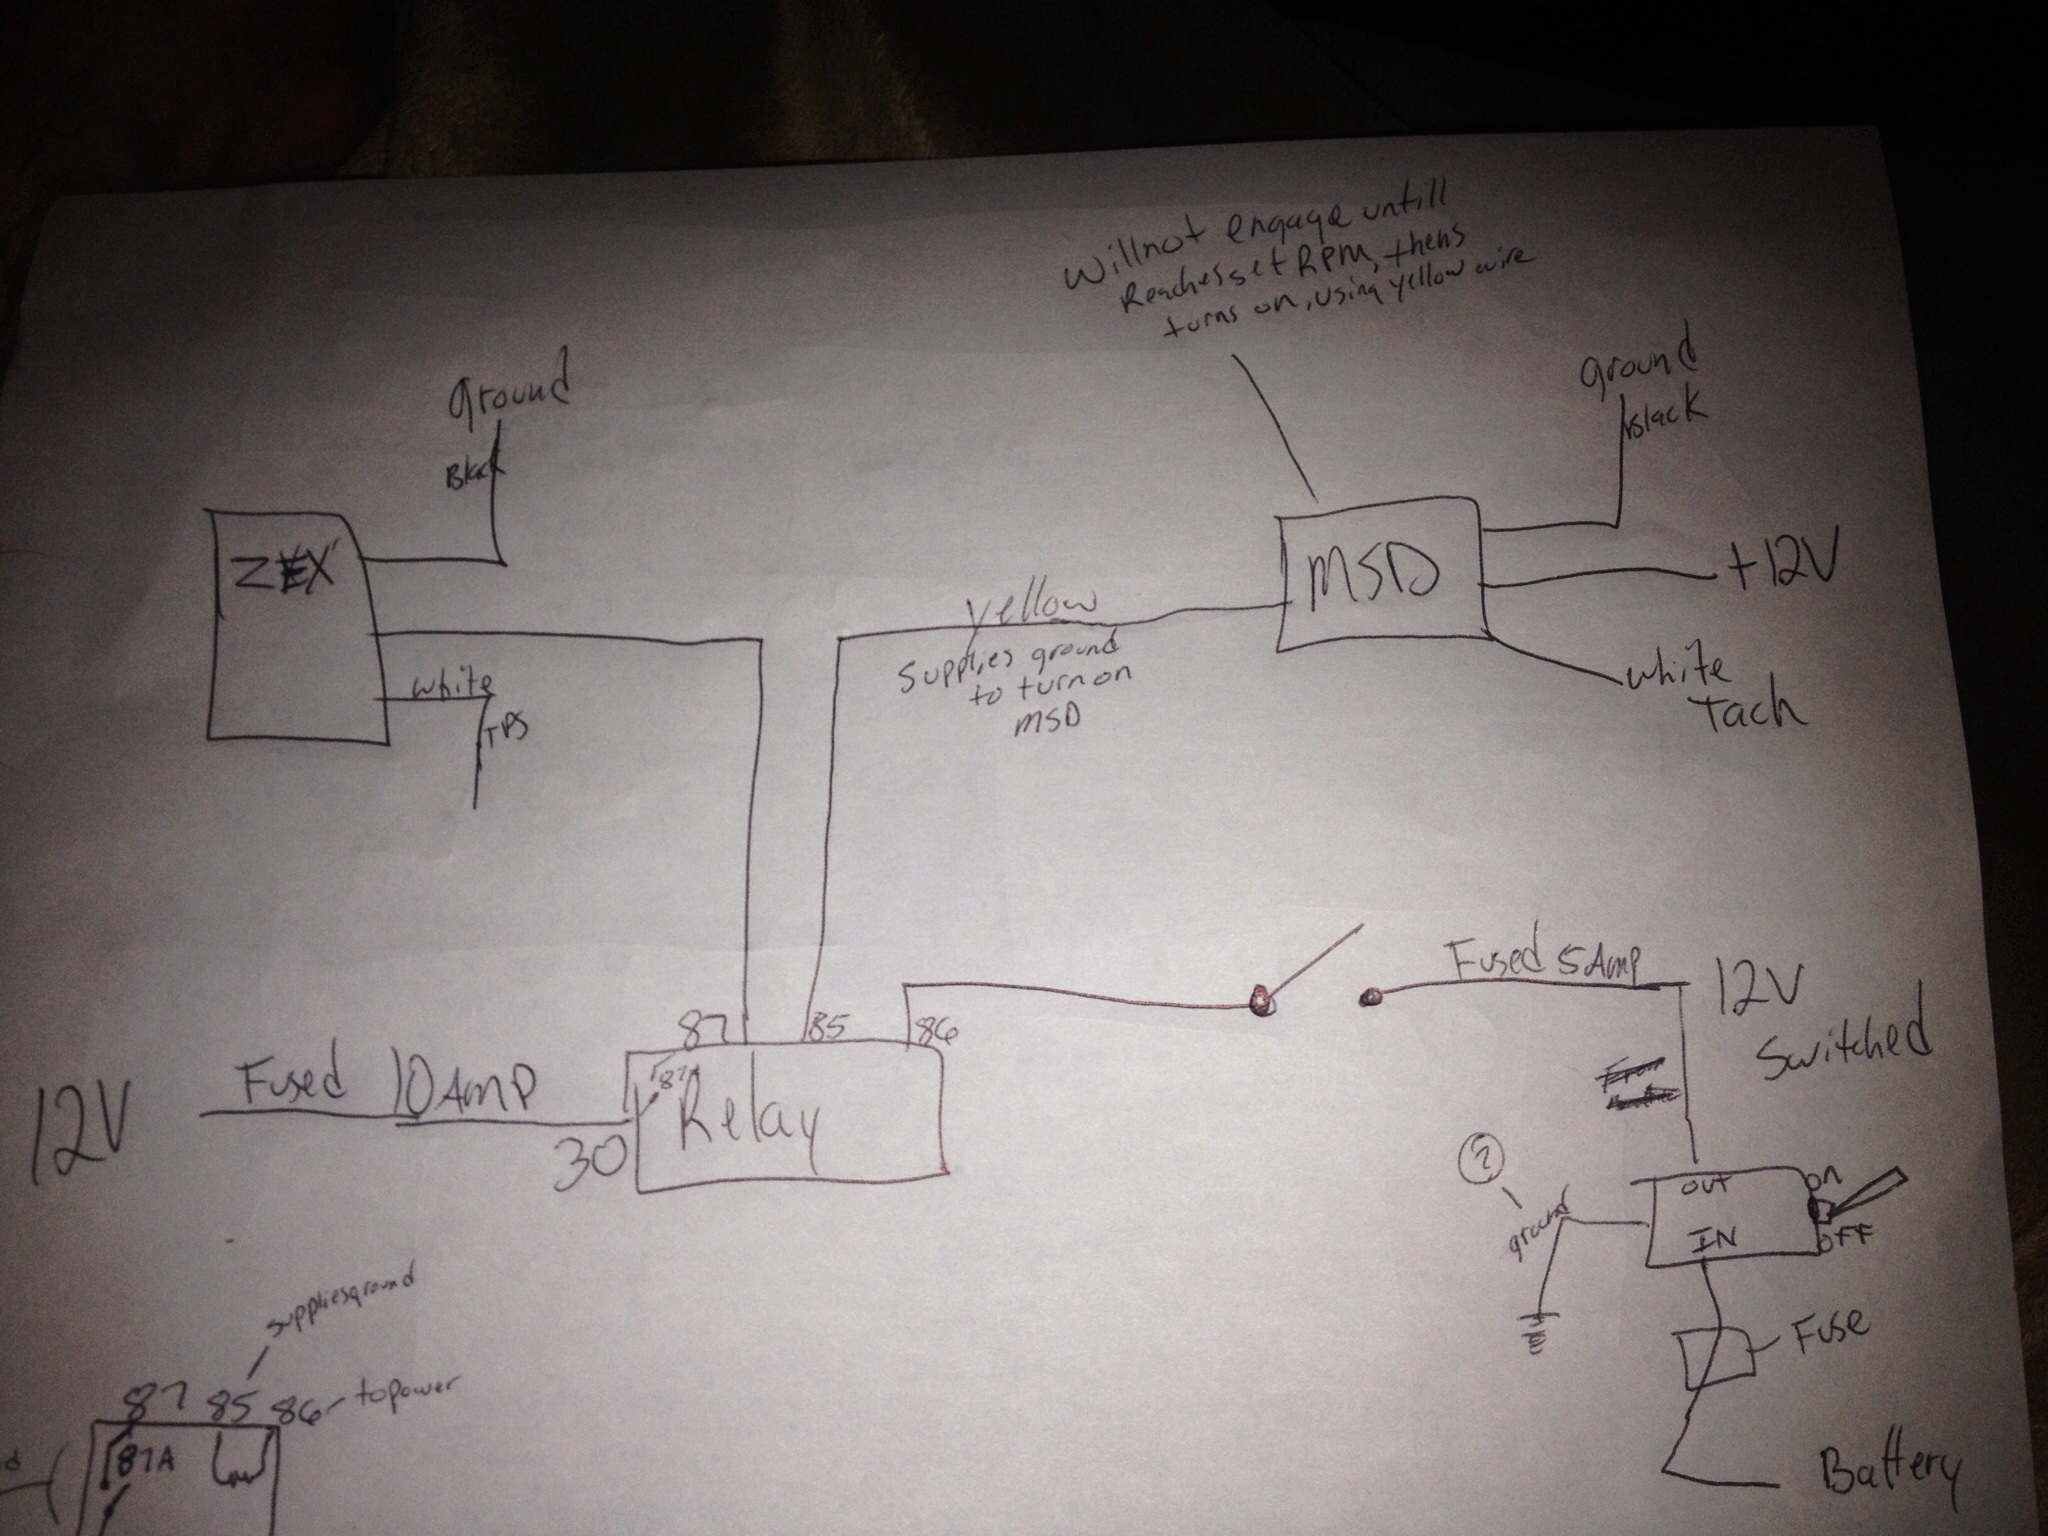 148032d1392610751 image nitrous is my wiring wrong please help mustang evolution msd digital window switch wiring diagram at n-0.co